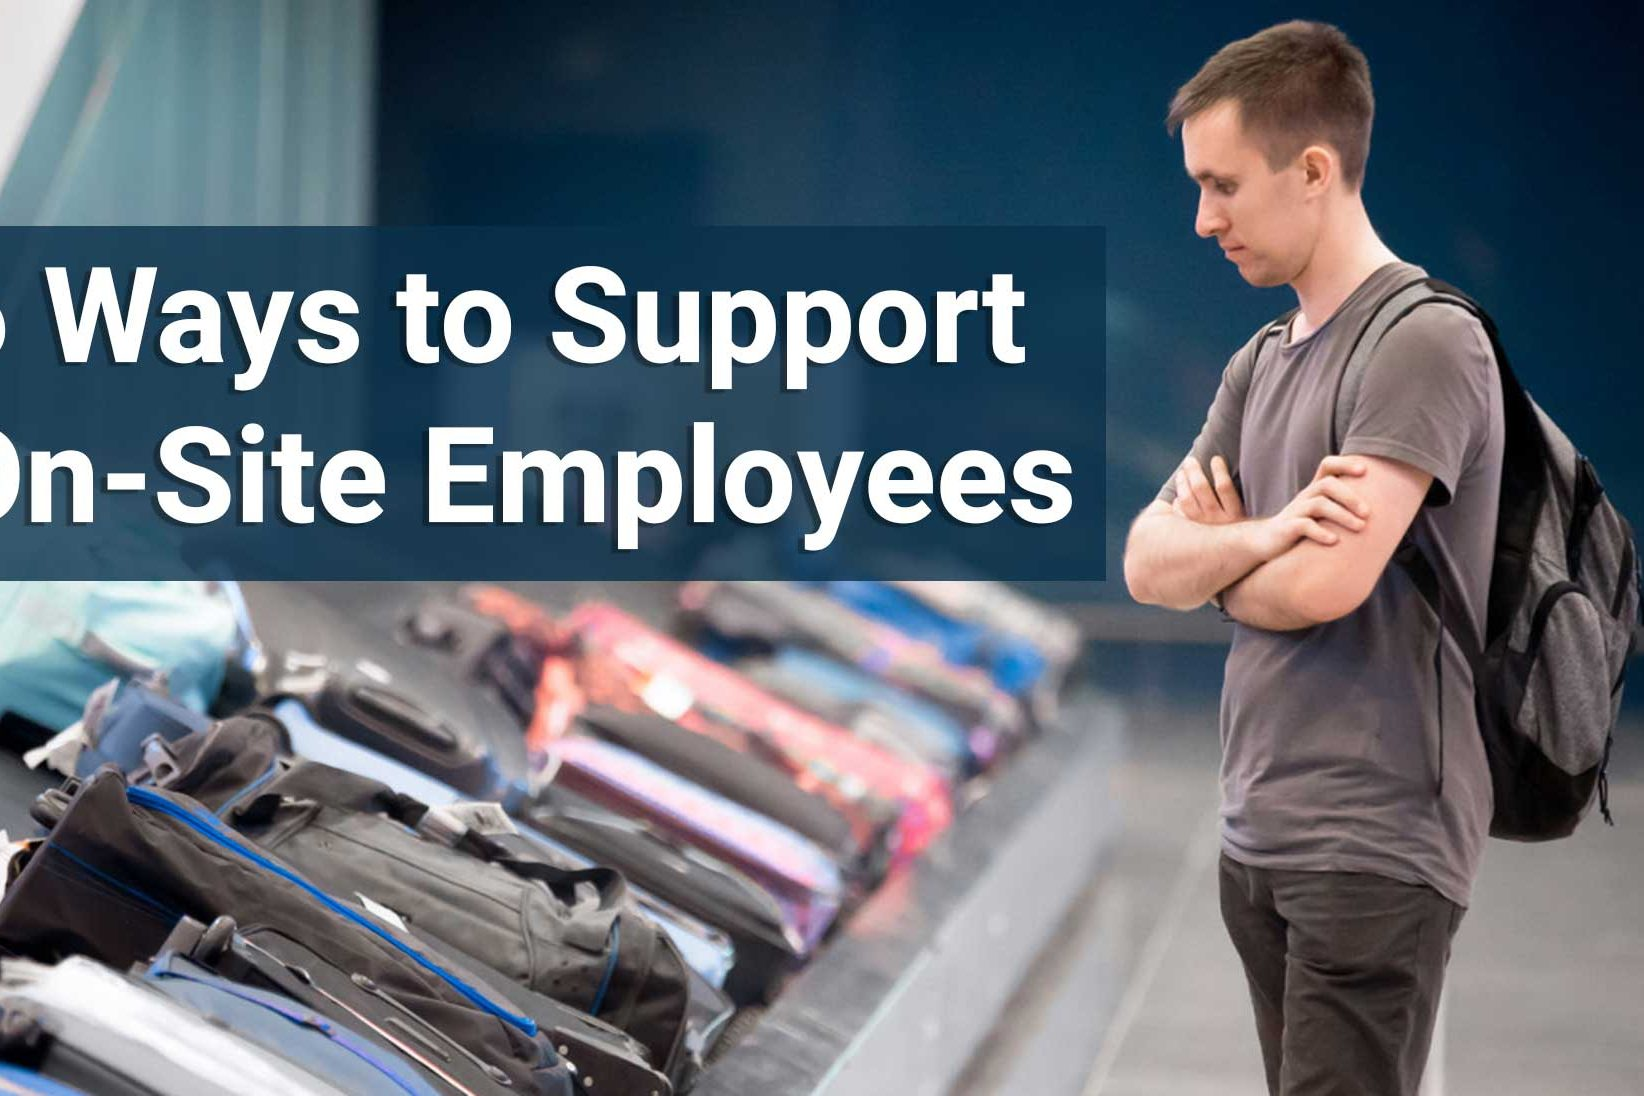 6 Ways to Support On-Site Employees